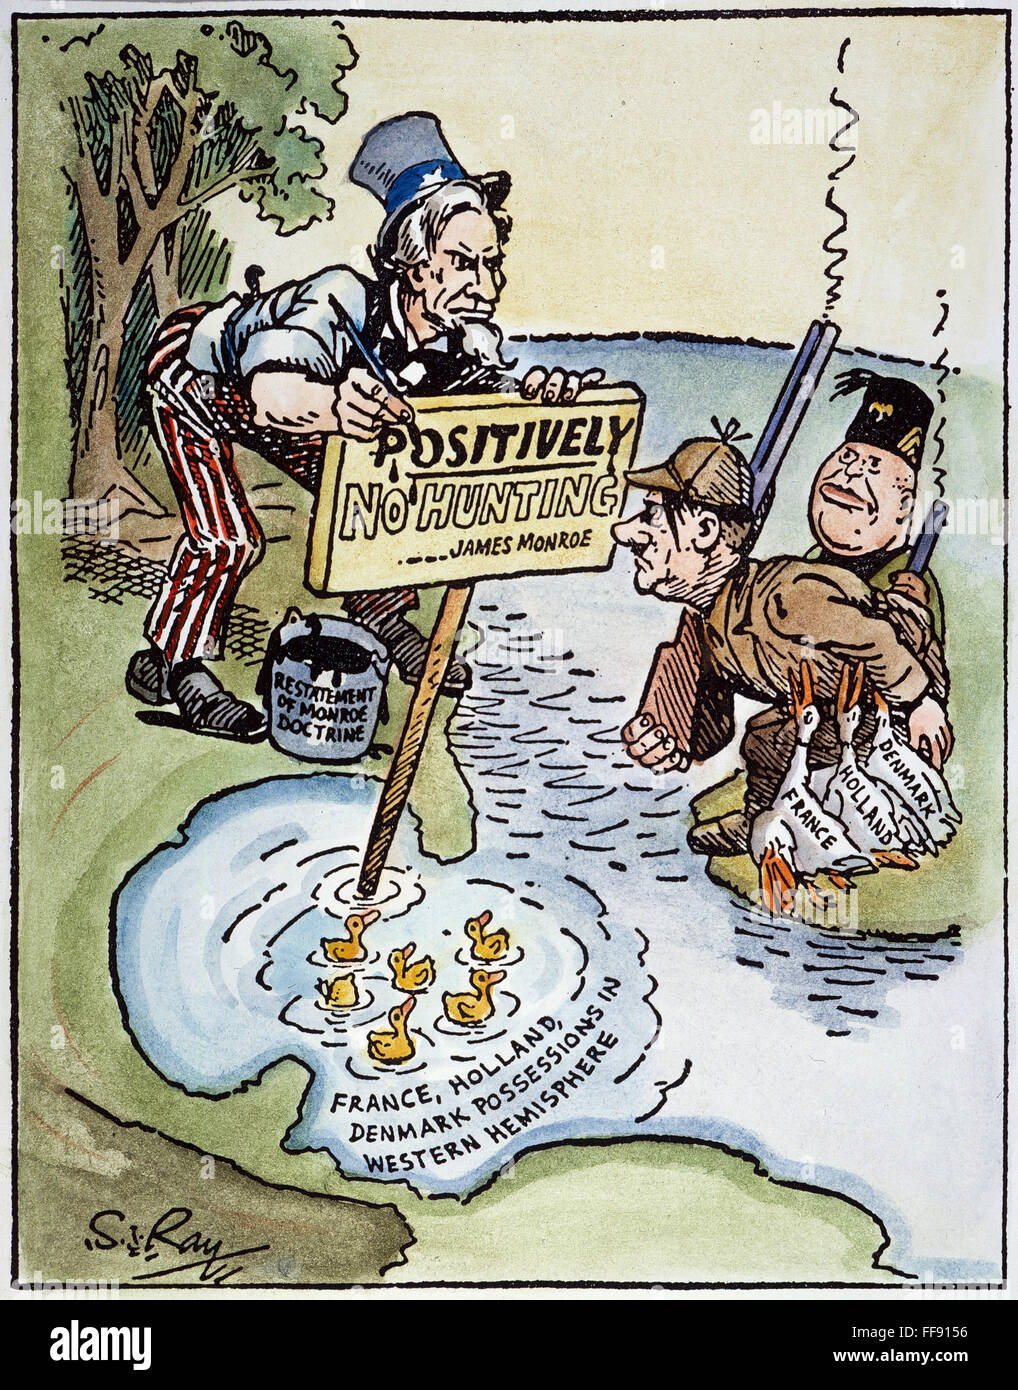 the monroe doctrine Monroe doctrine summary: the monroe doctrine was first stated by the fifth american president james monroe during the state of the union address to congress his seventh in a row on december 2, 1823 the napoleonic wars served as the inspiration for the monroe doctrine.